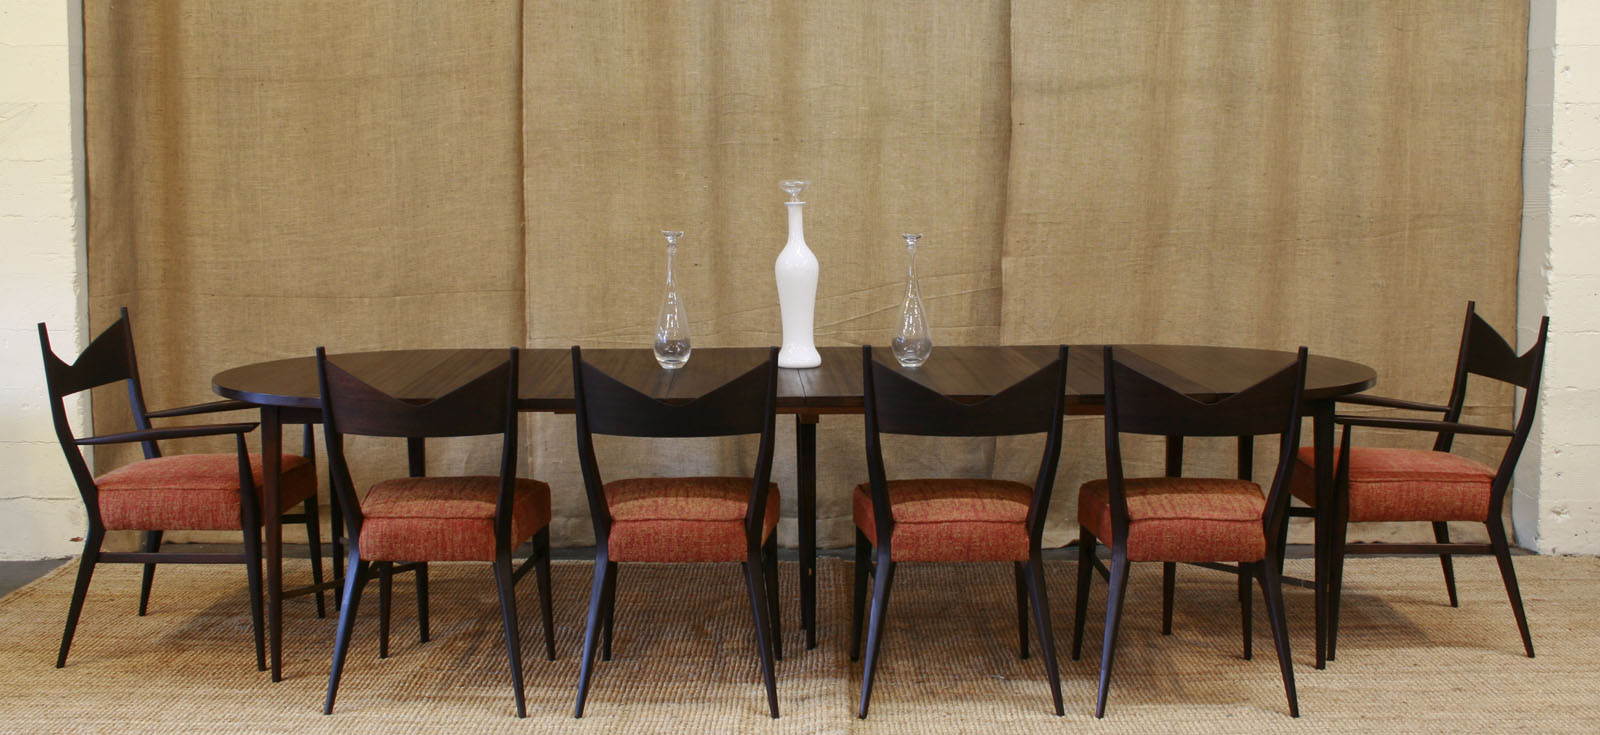 Dining Room Table Seats 8 Dimensions